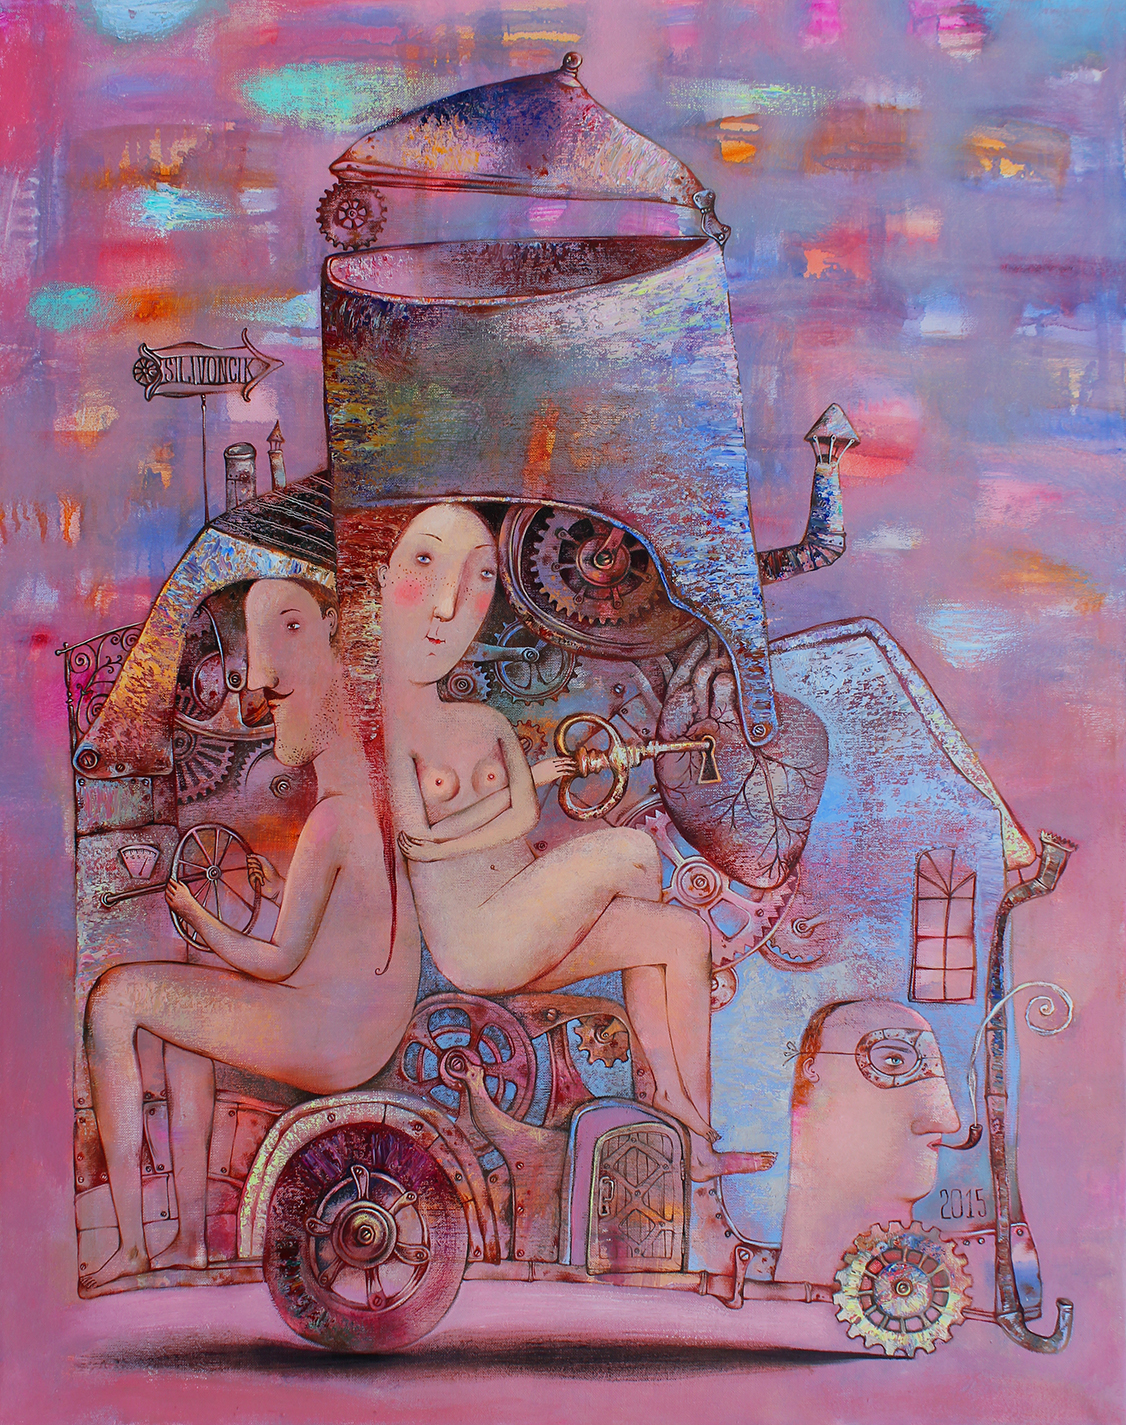 Anna Silivonchik, Journey Inwards, 2015, Oil on Canvas, 39 x 36 in (100 x 90 cm)